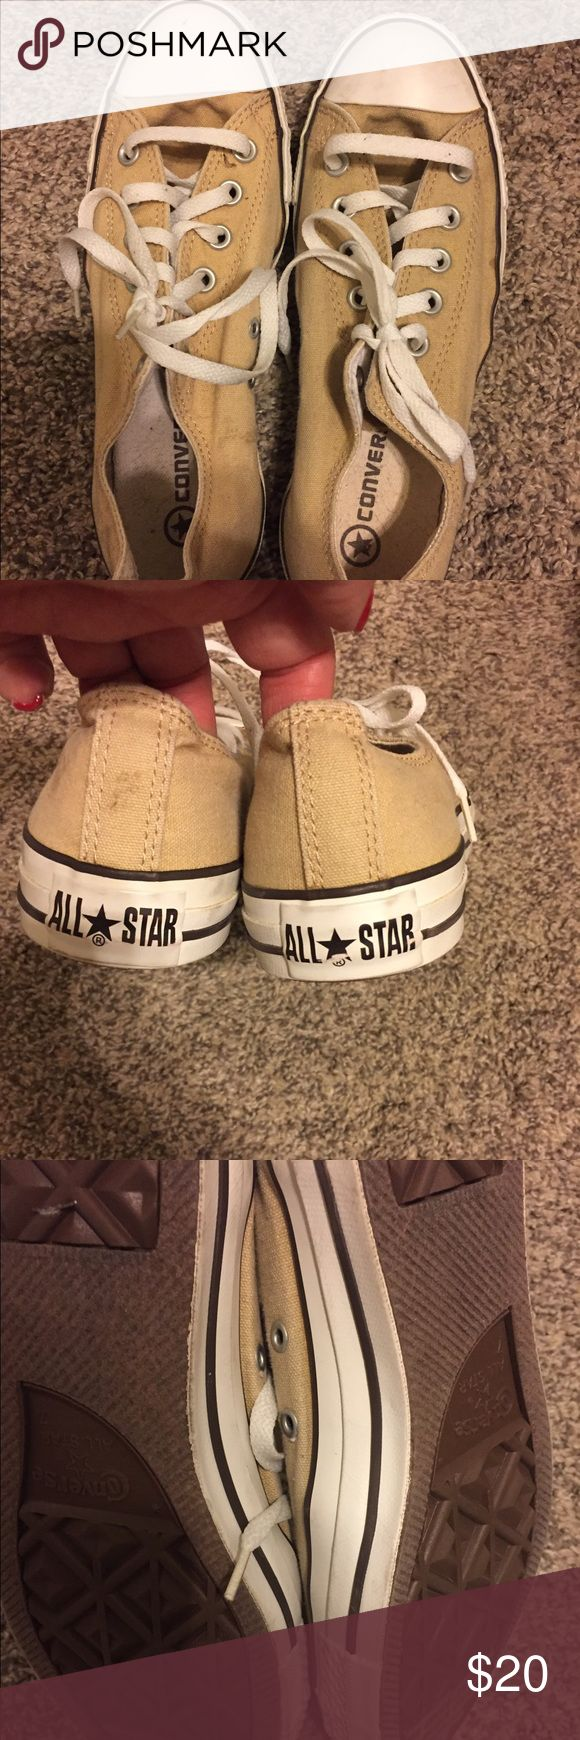 Converse 🖤💛 Off white, super clean!!! Converse Shoes Sneakers